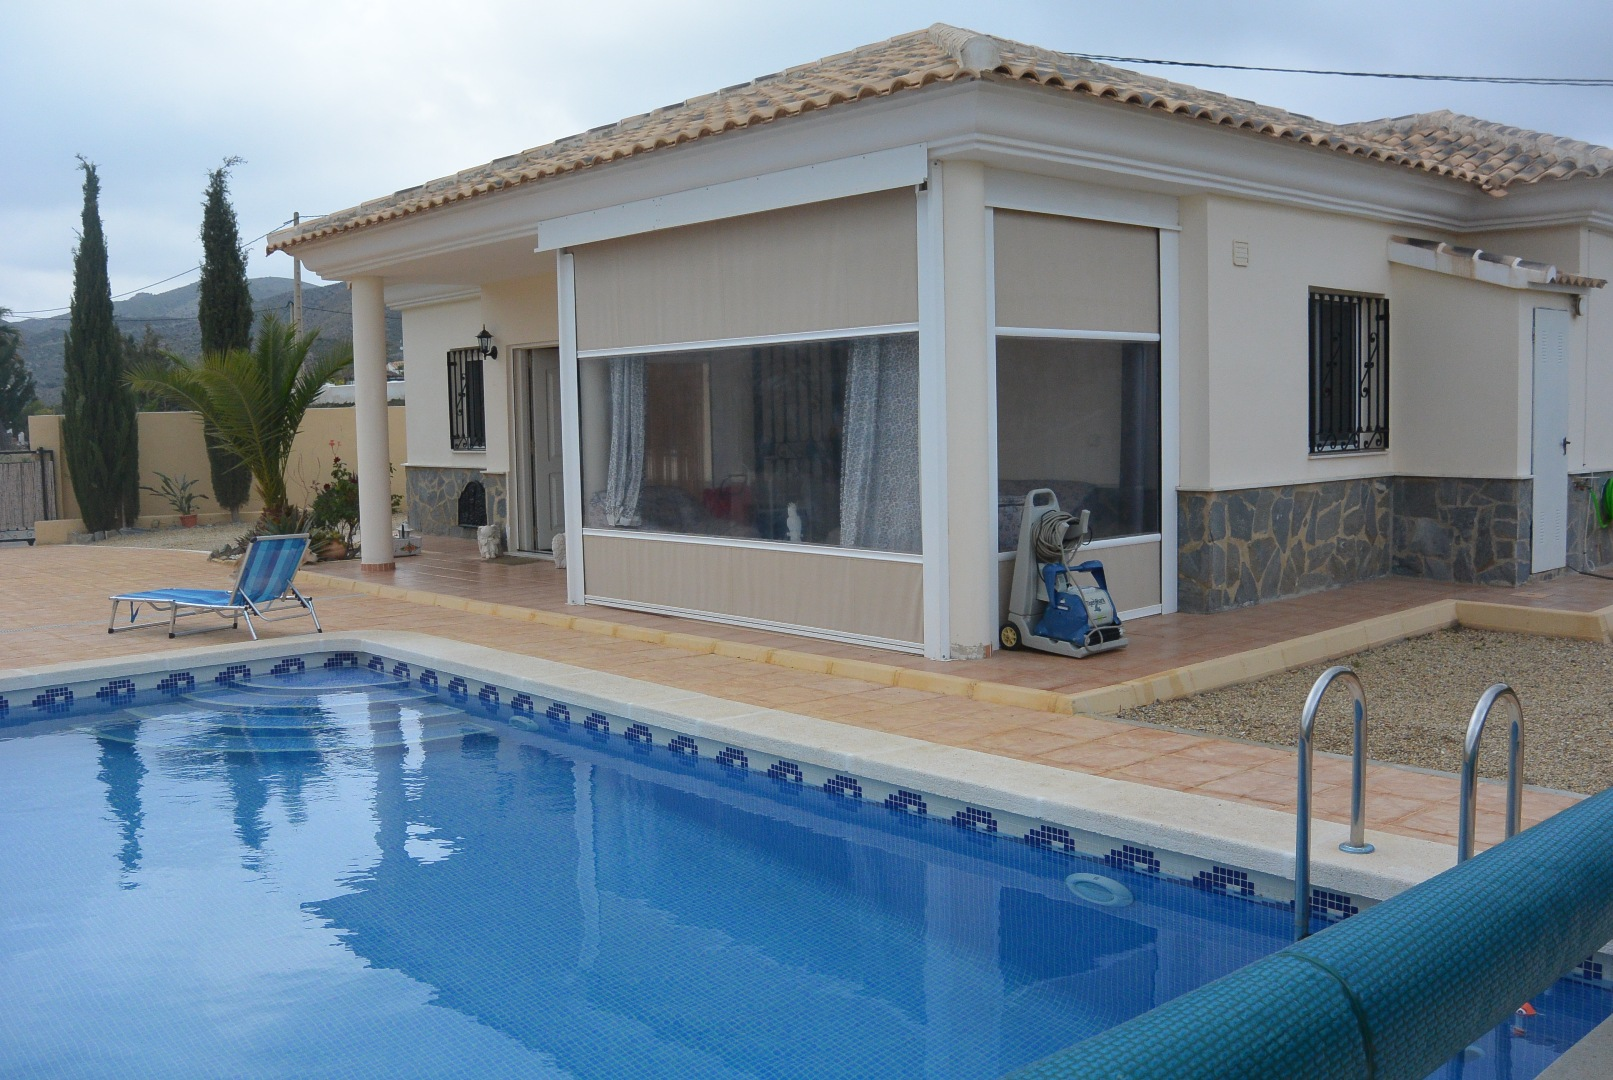 Villas Con Piscina Privada Magnifica Villa Con Piscina Privada All Spain Coast Properties